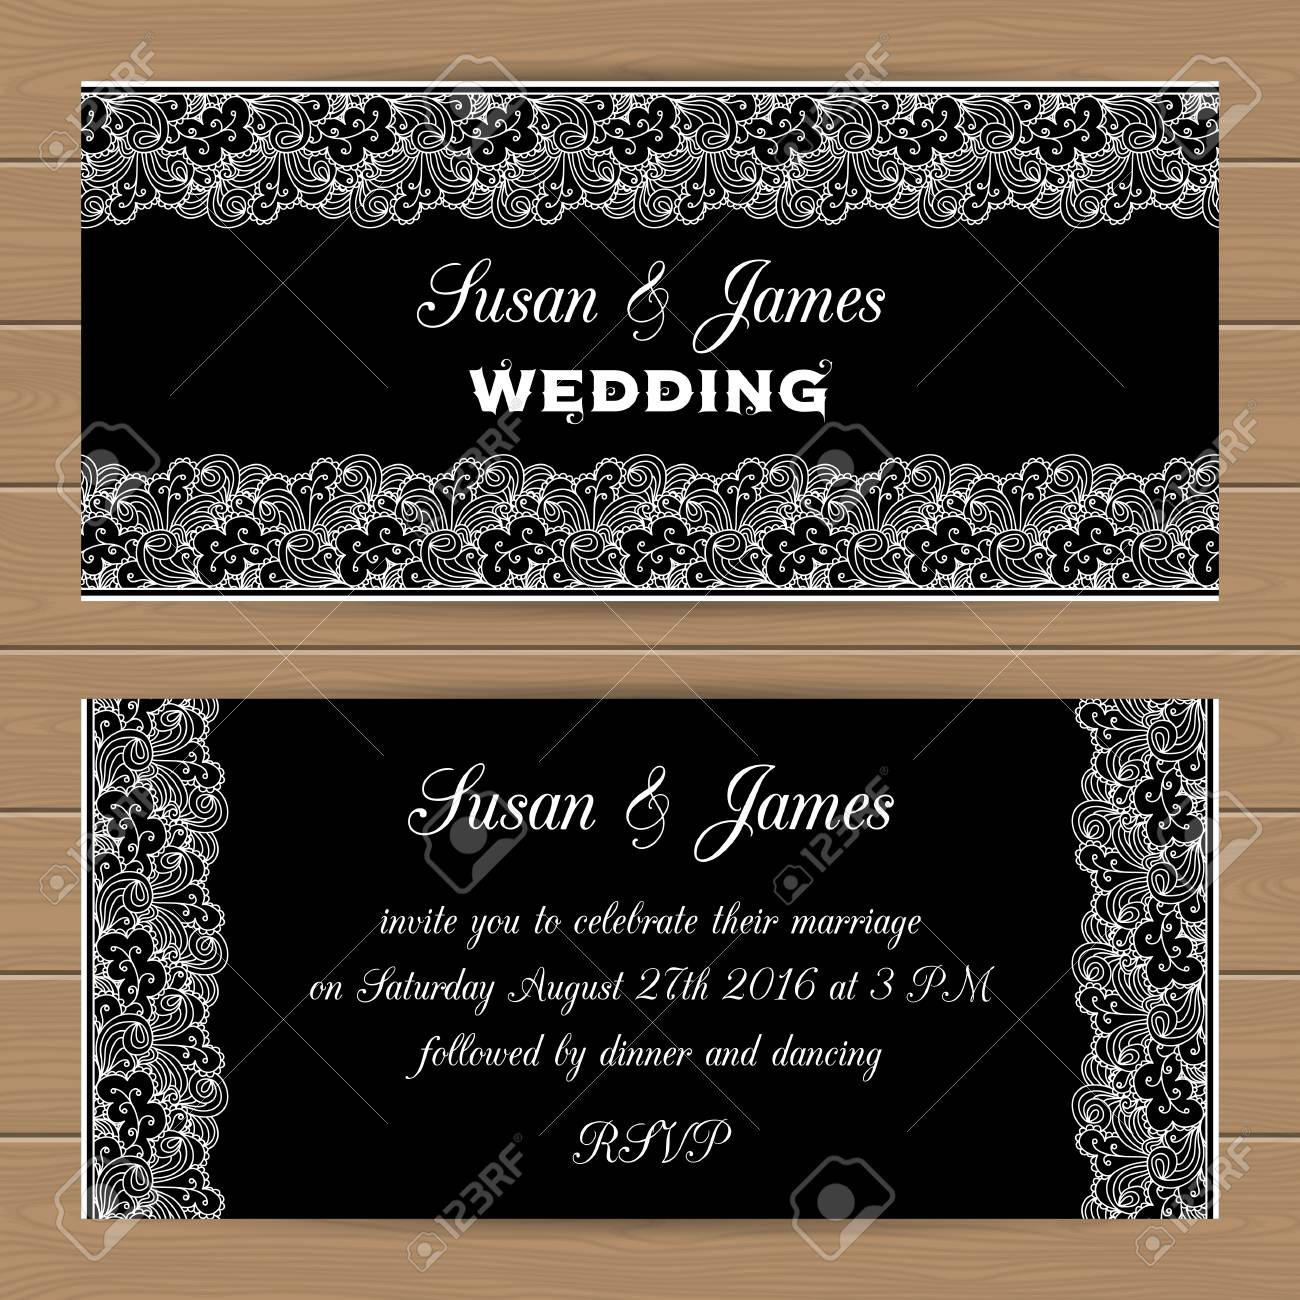 Wedding Card Or Invitation Template With Lacy Border Can Use